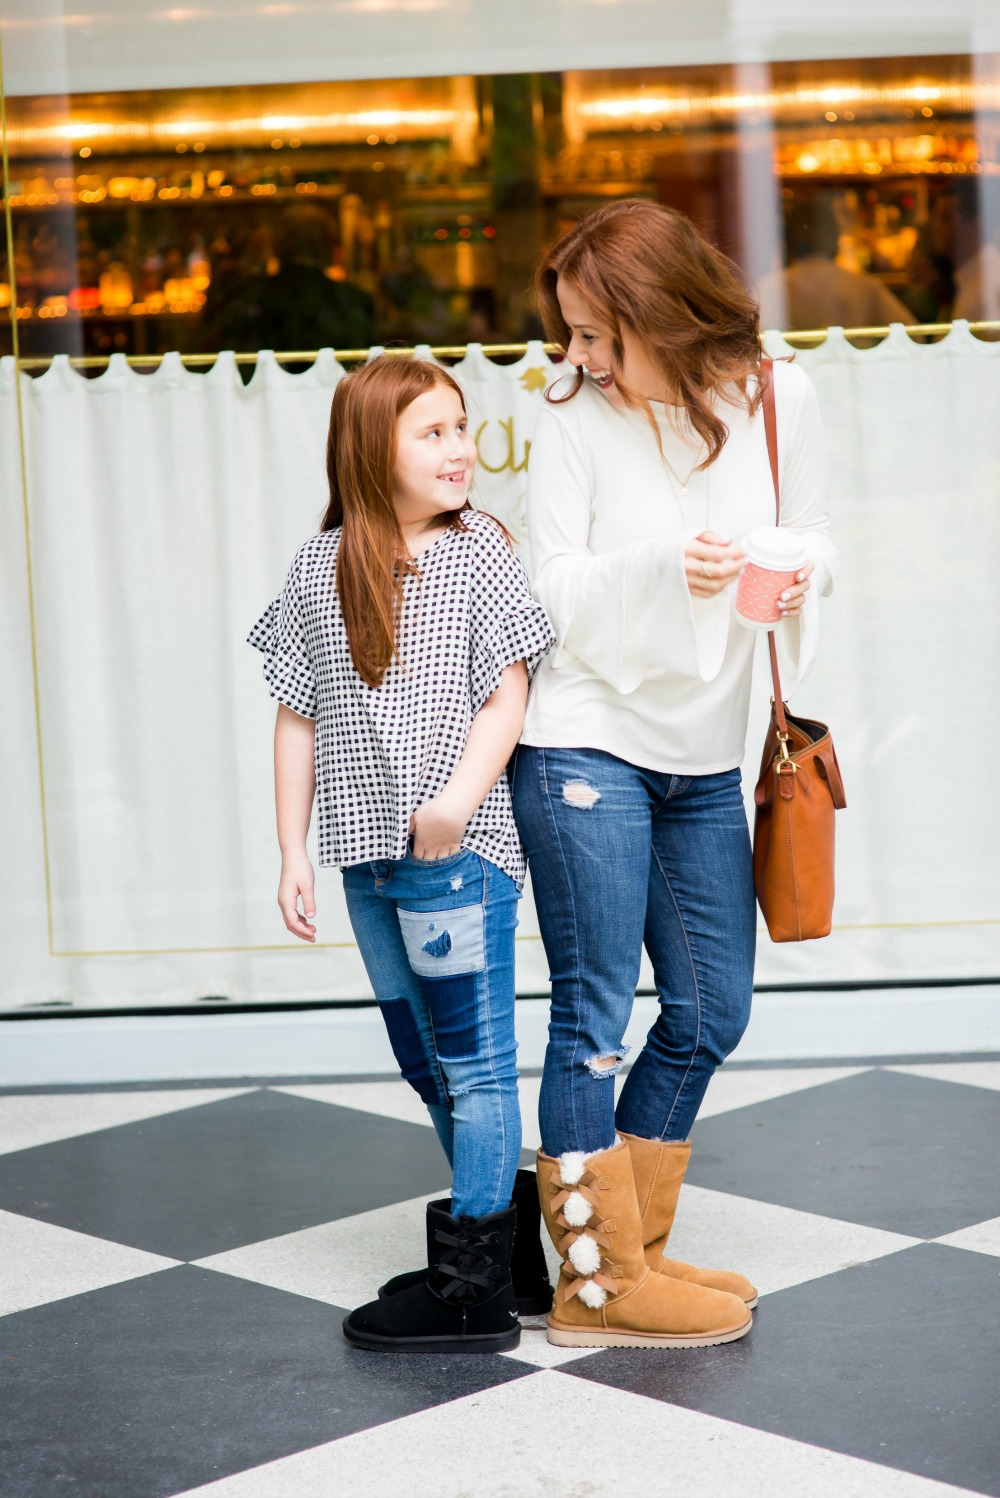 Cozy cute mother daughter winter style (on a budget!) - winter boots edition by popular Florida style blogger The Modern Savvy